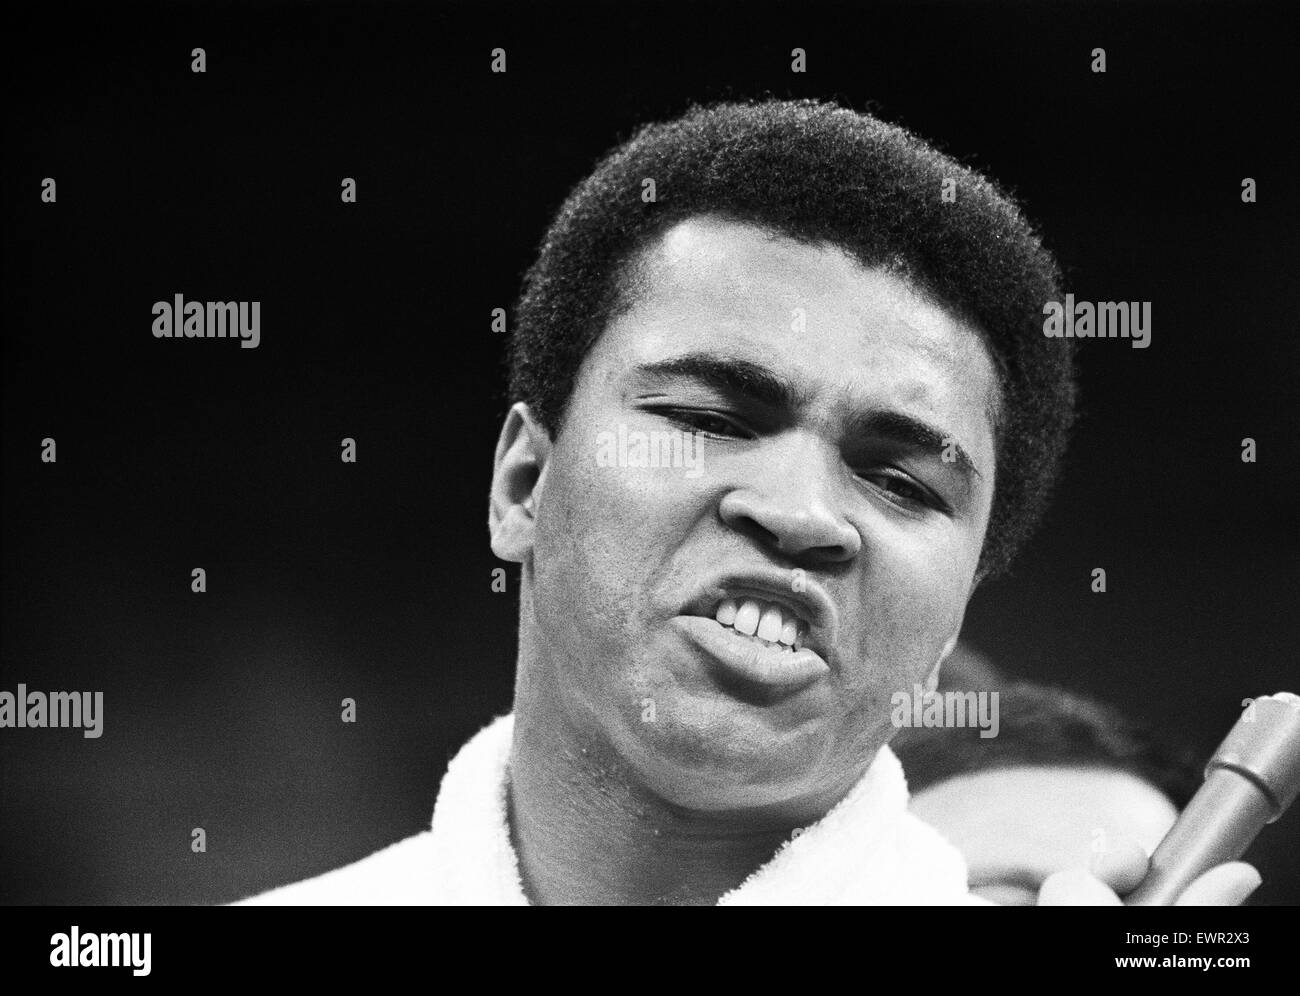 Muhammad Ali talking to the press in his training camp ahead of his first fight with Joe Frazier. 1st December 1972 - Stock Image